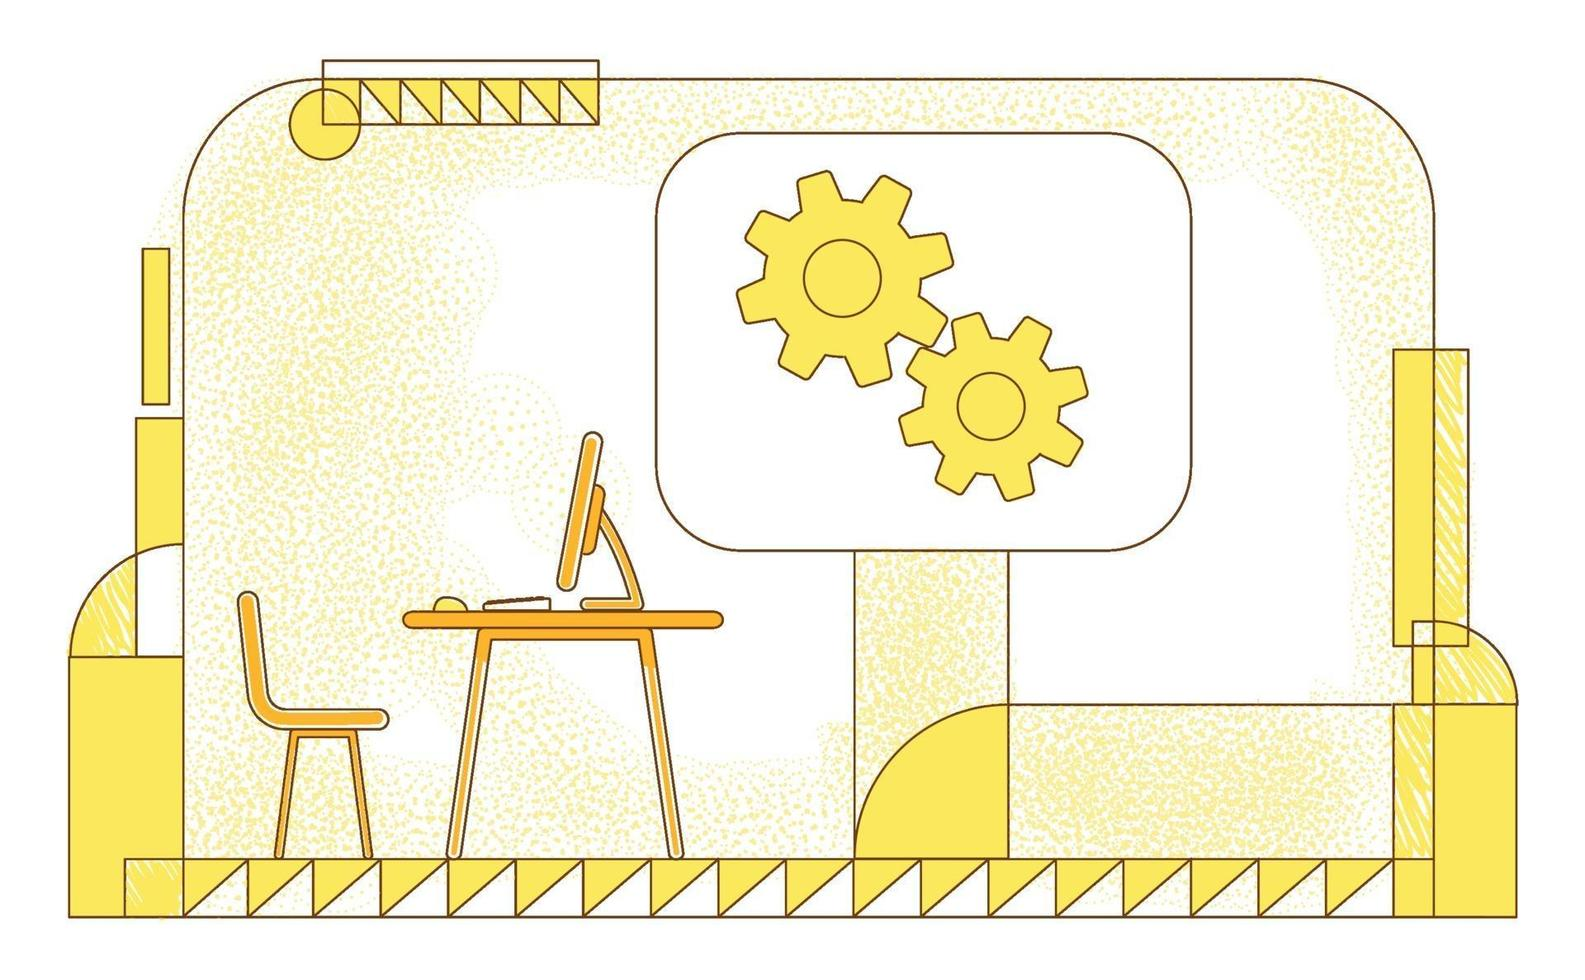 Directors office flat silhouette vector illustration. Executive manager, company CEO workplace contour composition on yellow background. Empty workspace and gears simple style drawing